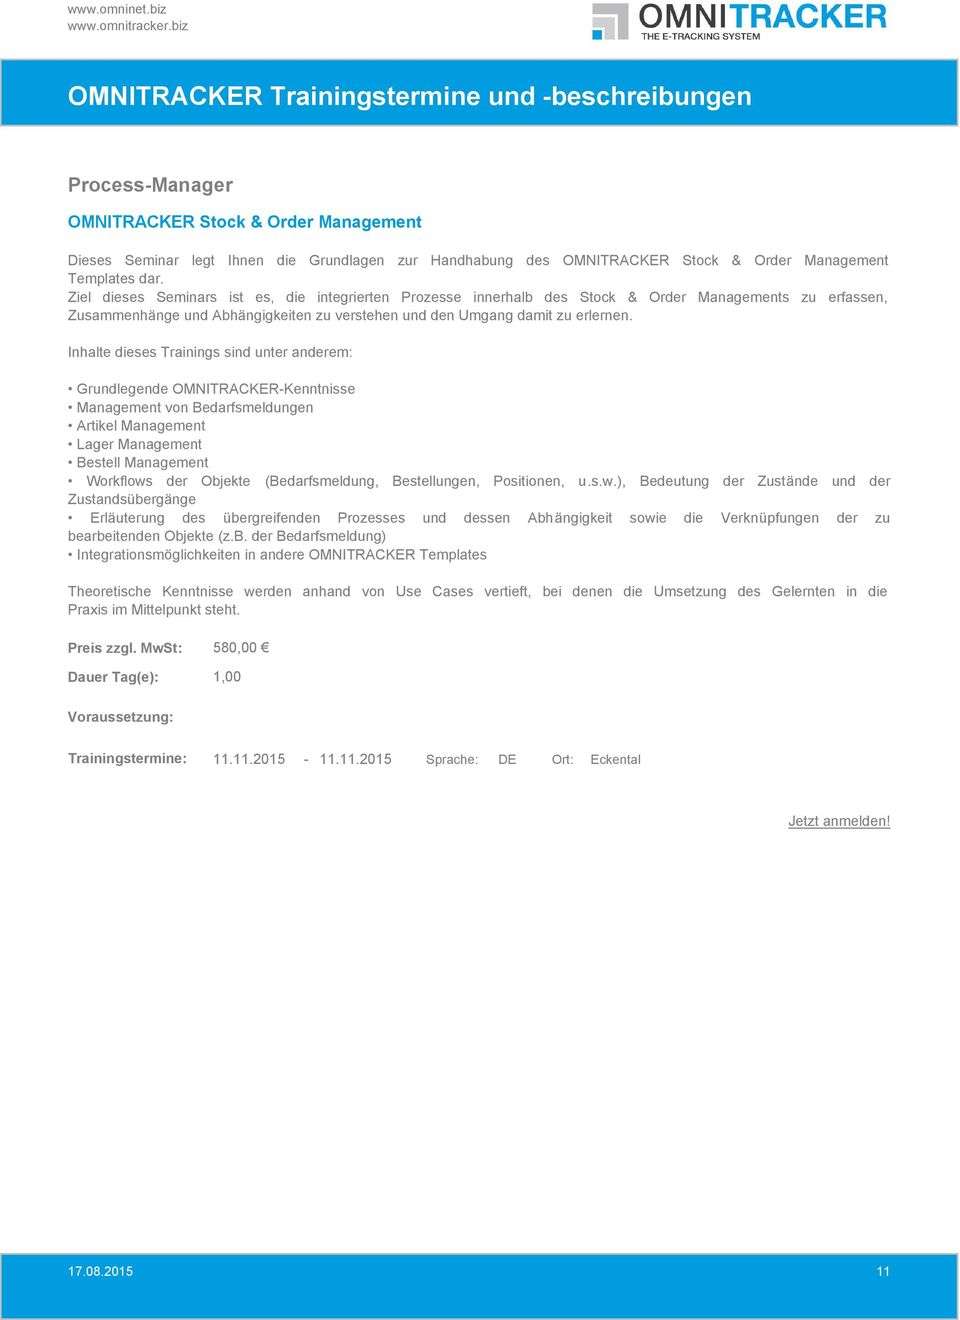 Grundlegende OMNITRACKER-Kenntnisse Management von Bedarfsmeldungen Artikel Management Lager Management Bestell Management Workflows